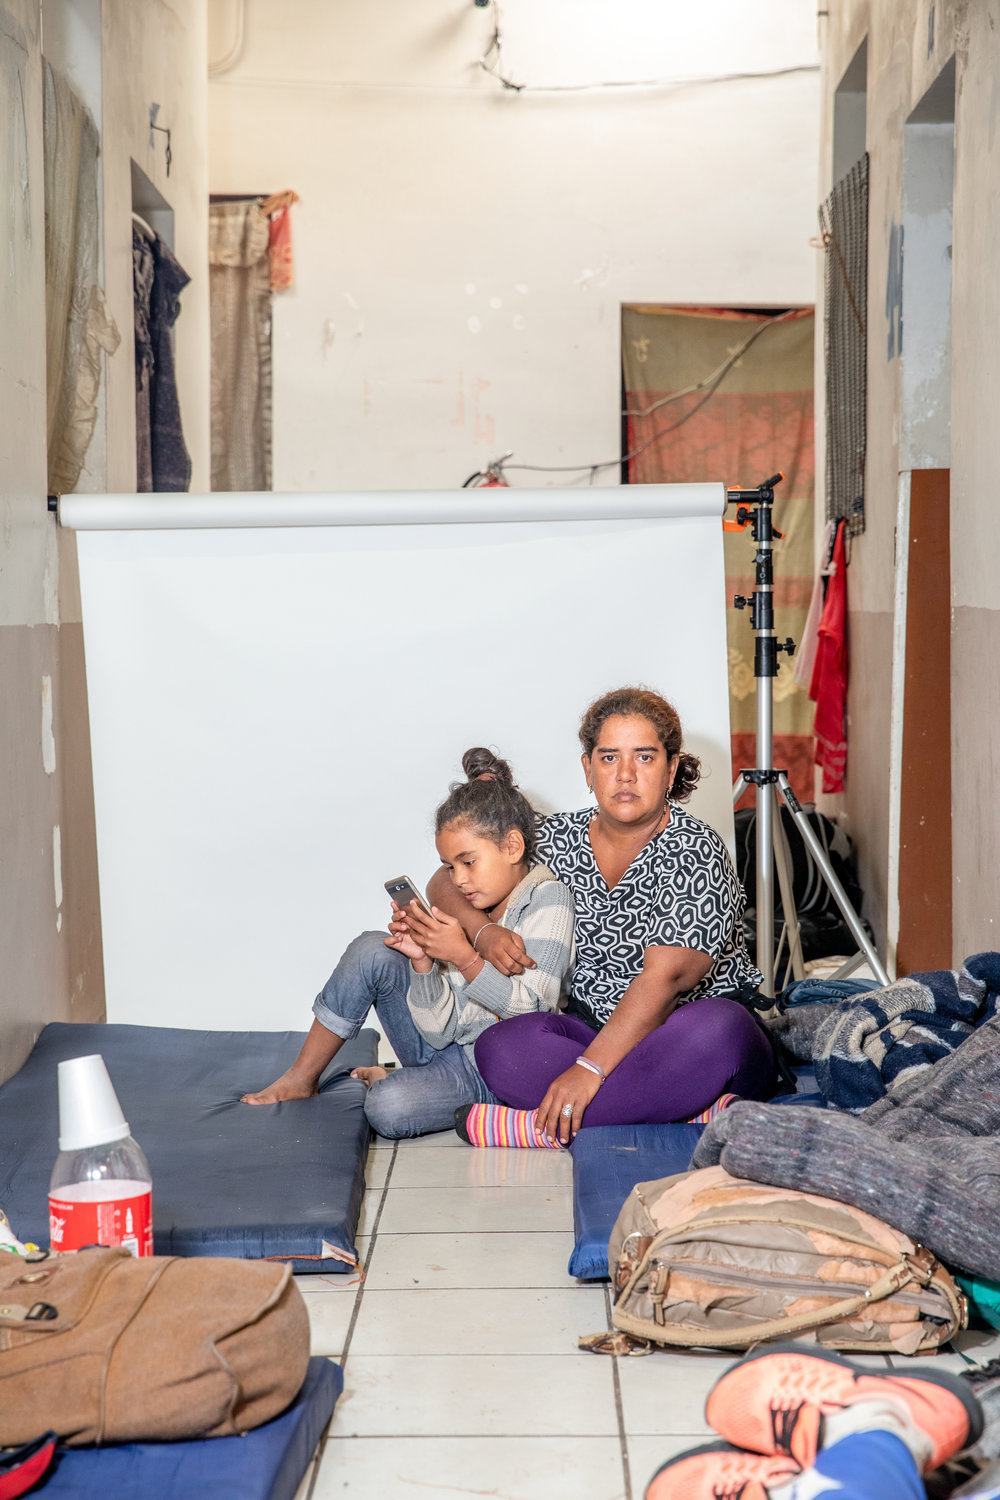 """The crime there left me bankrupt,"" - said María Claro, 35 and her daughter Valerie Claro, 9, from Cortes, Honduras. Claro made the decision overnight, she did not spend a lot of time thinking about it.Claro sold used clothes at an informal stand on the street, paying the 'tax' that the gangs required was starting to be impossible.""I left because they were extorting me, that was my reason. They told me that if I did not pay the tax the next month, they would kill my daughter. I could not find a way to make the money that I owed. I had no money to pay, or any way to sell enough to make up my debt.""During the journey, many watched the statements of President Trump. ""We have been accused of being criminals, but not we are not. We are hardworking people. We tried to get ahead, but they did not let us. I ask Trump to have a conscience. There are women and children who are very hardworking. We like to earn our daily bread, in an honest way. Just as he was once a migrant, so are we."""